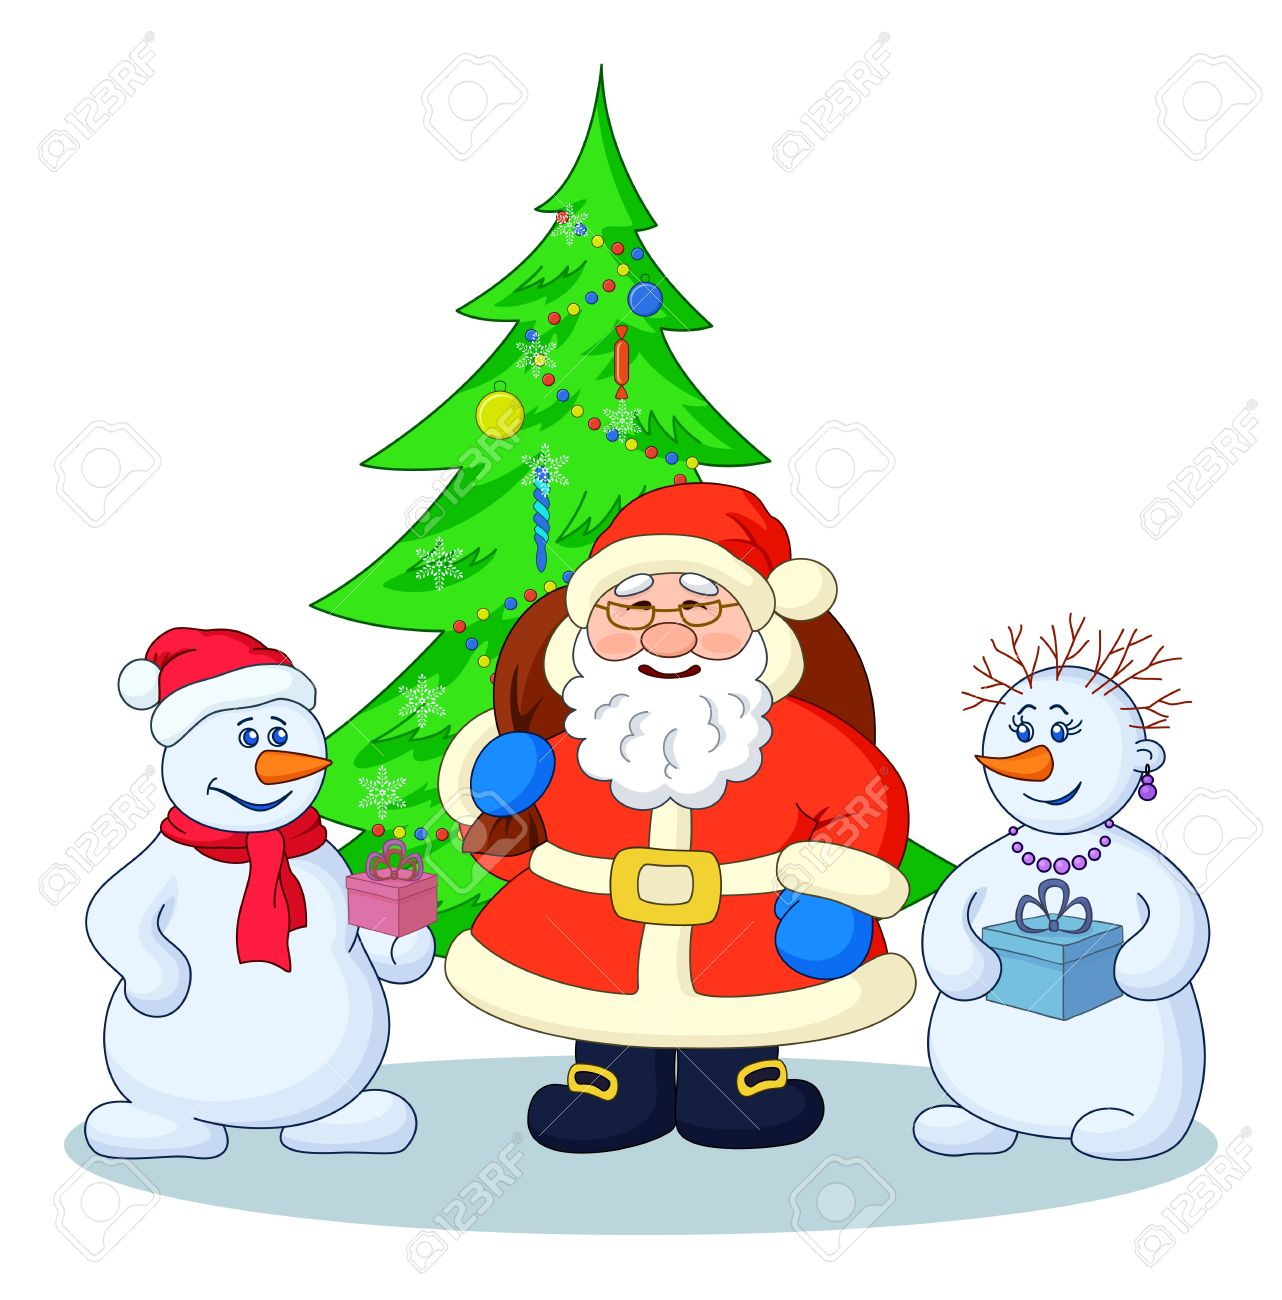 holiday cartoon santa claus christmas tree and snowmans with a gift boxes illustration stock illustration - Holiday Cartoon Images